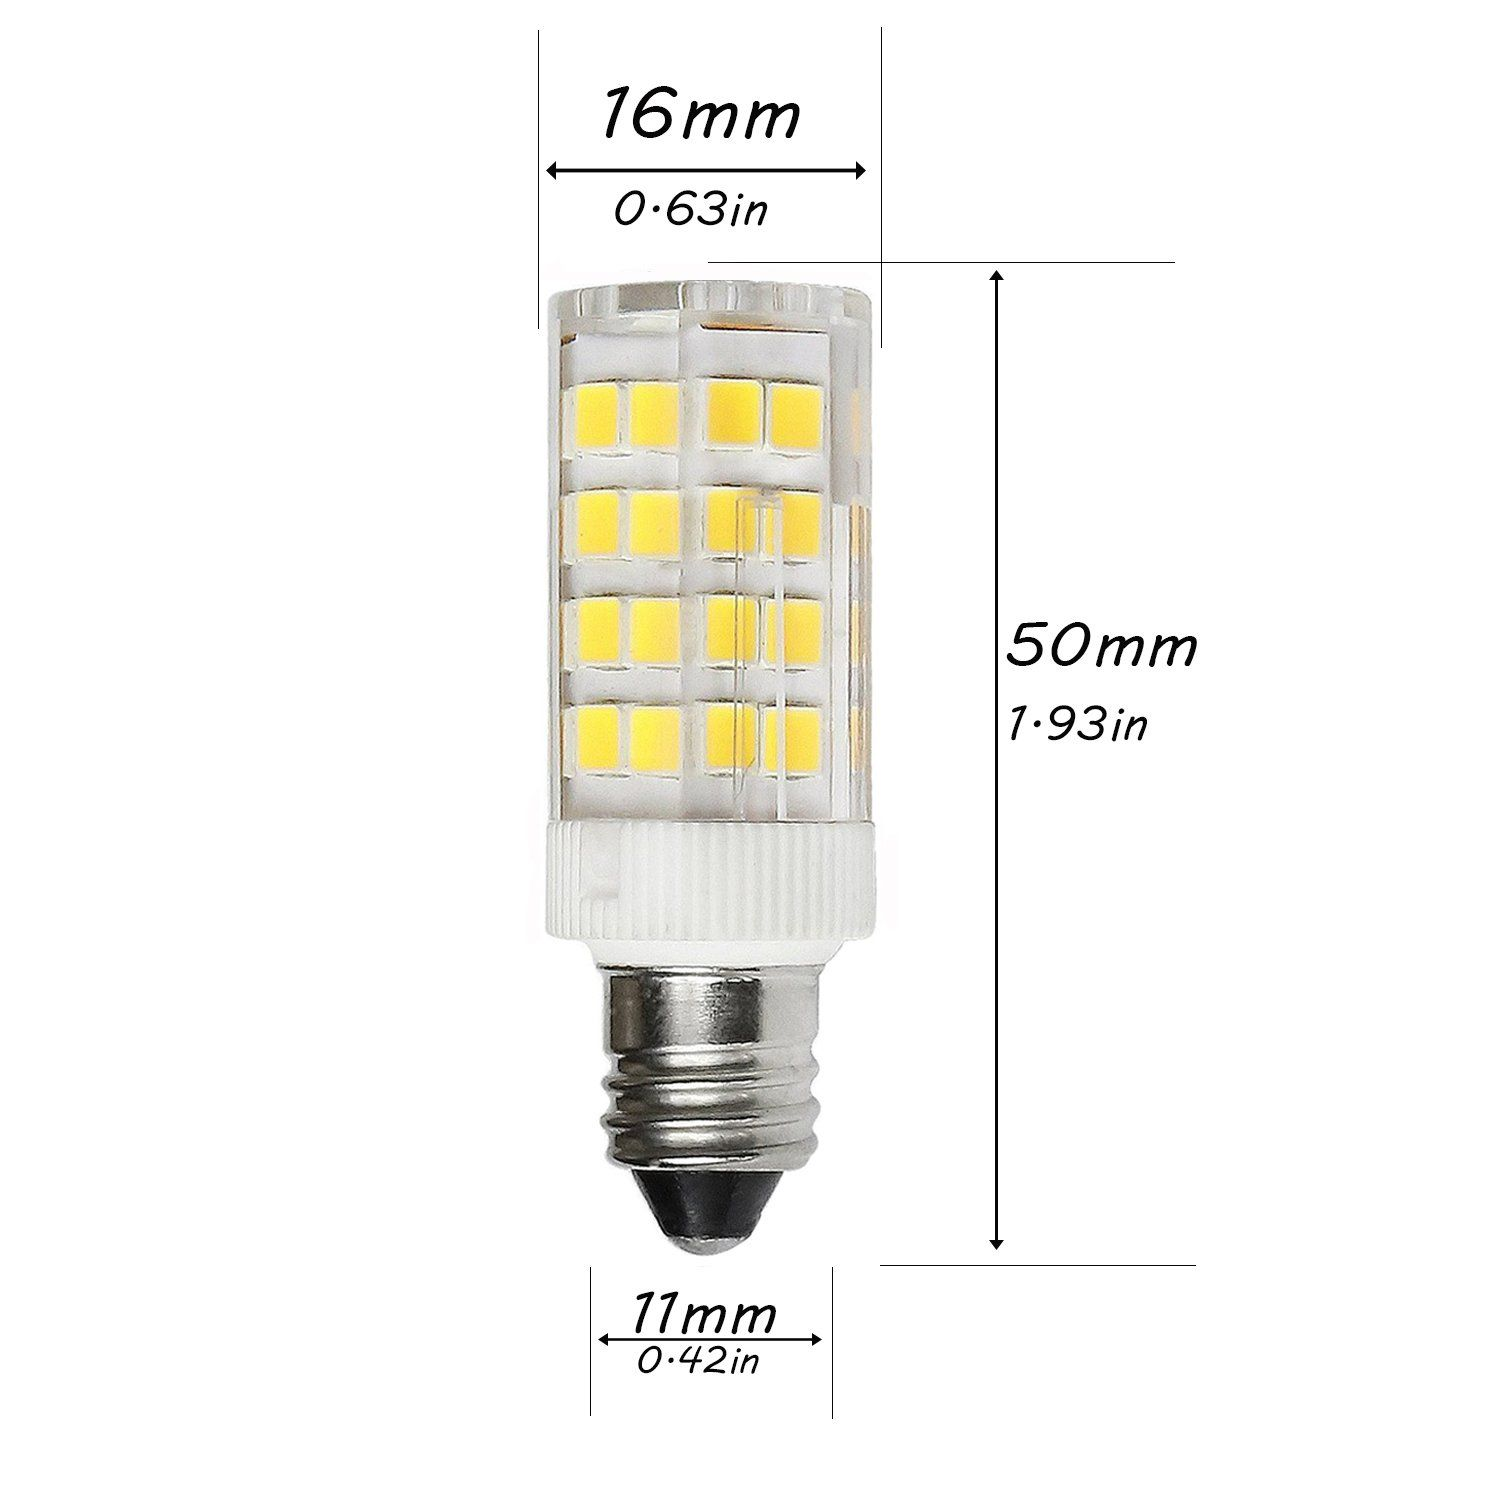 4 5w Dimmable E11 Led Light Bulb 40w Halogen Bulbs Equivalent Mini Candelabra E11 Base Daylight 6000k T3 T4 Omnidirectional Light Bulb Led Bulb Led Light Bulb